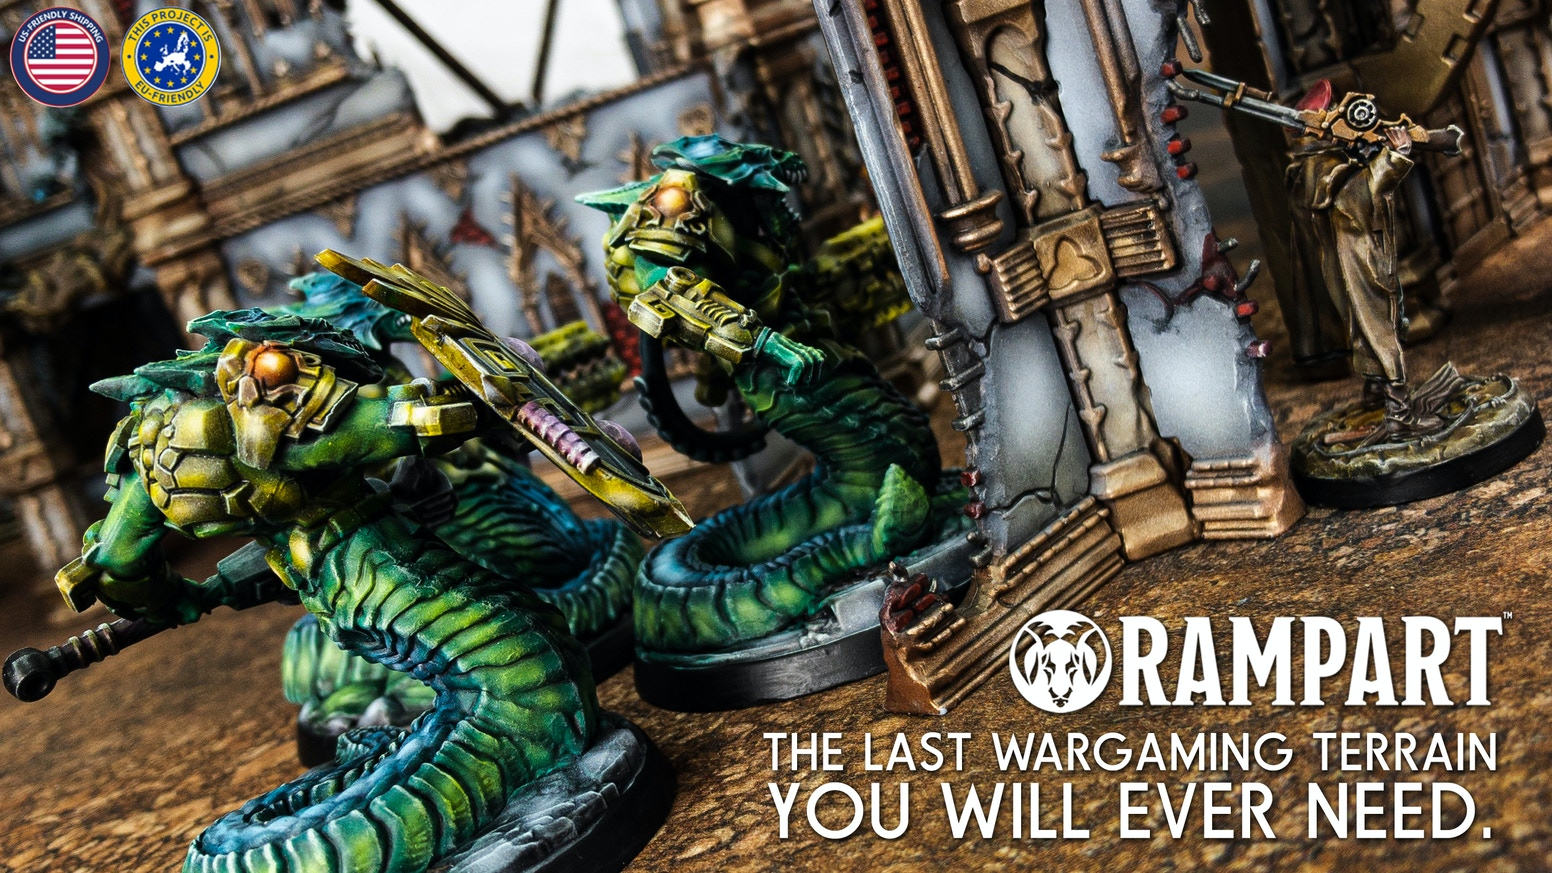 Second Edition of Rampart Terrain featuring all-new theme and upgrades for existing sets.